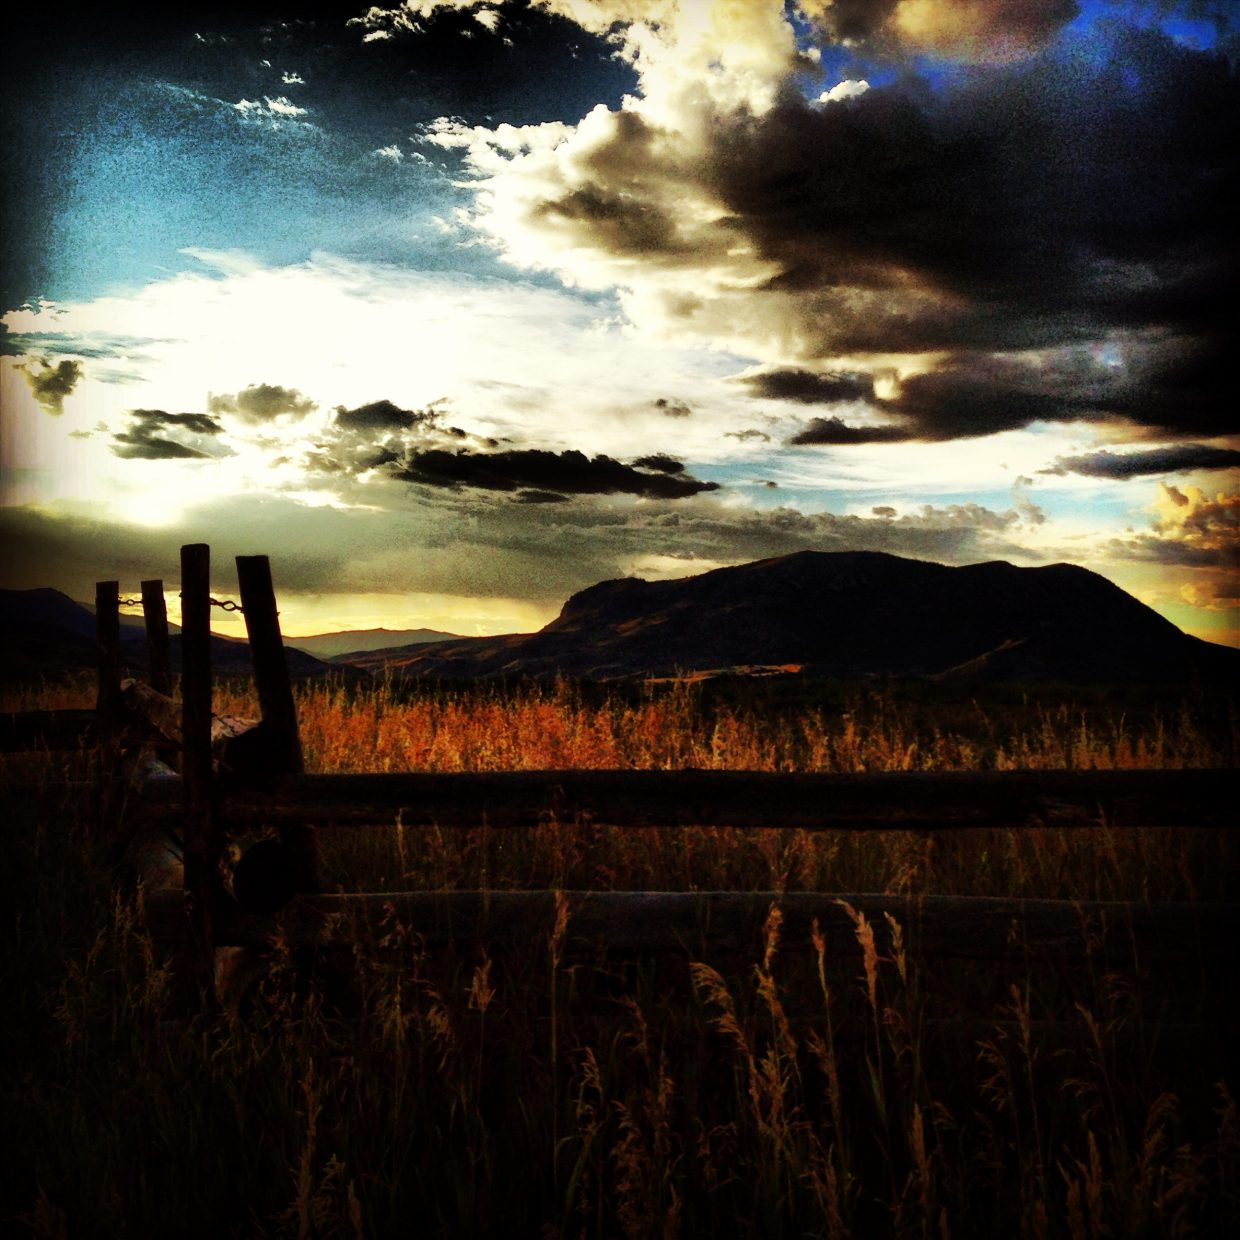 Sleeping Giant at sunset. Submitted by: Chris Lanham